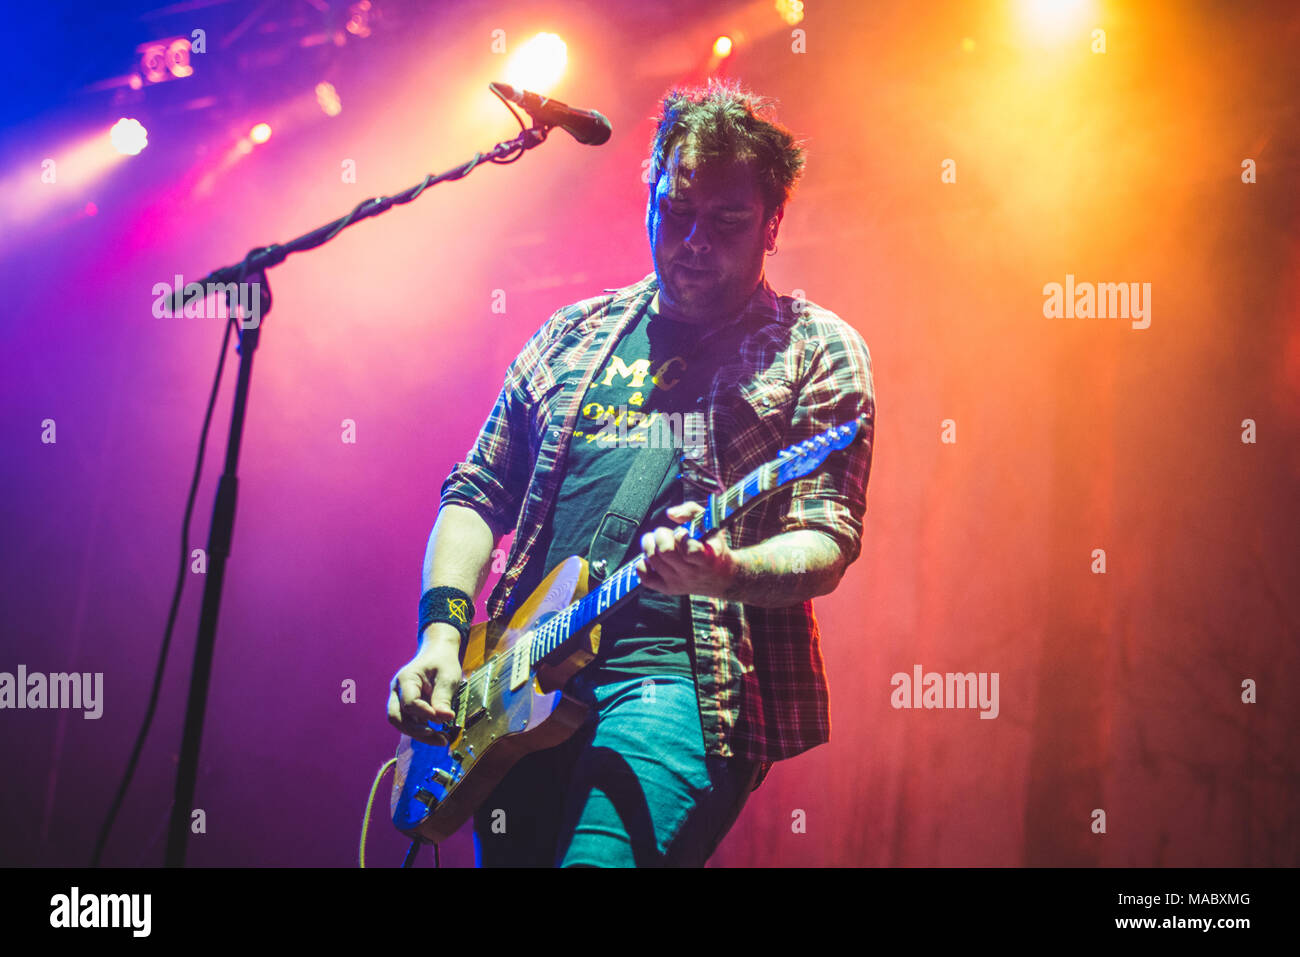 August 27th, 2017: The American indie group Band of Horses performing live on stage at the TODays festival 2017 in Torino. Photo: Alessandro Bosio/Ala Stock Photo